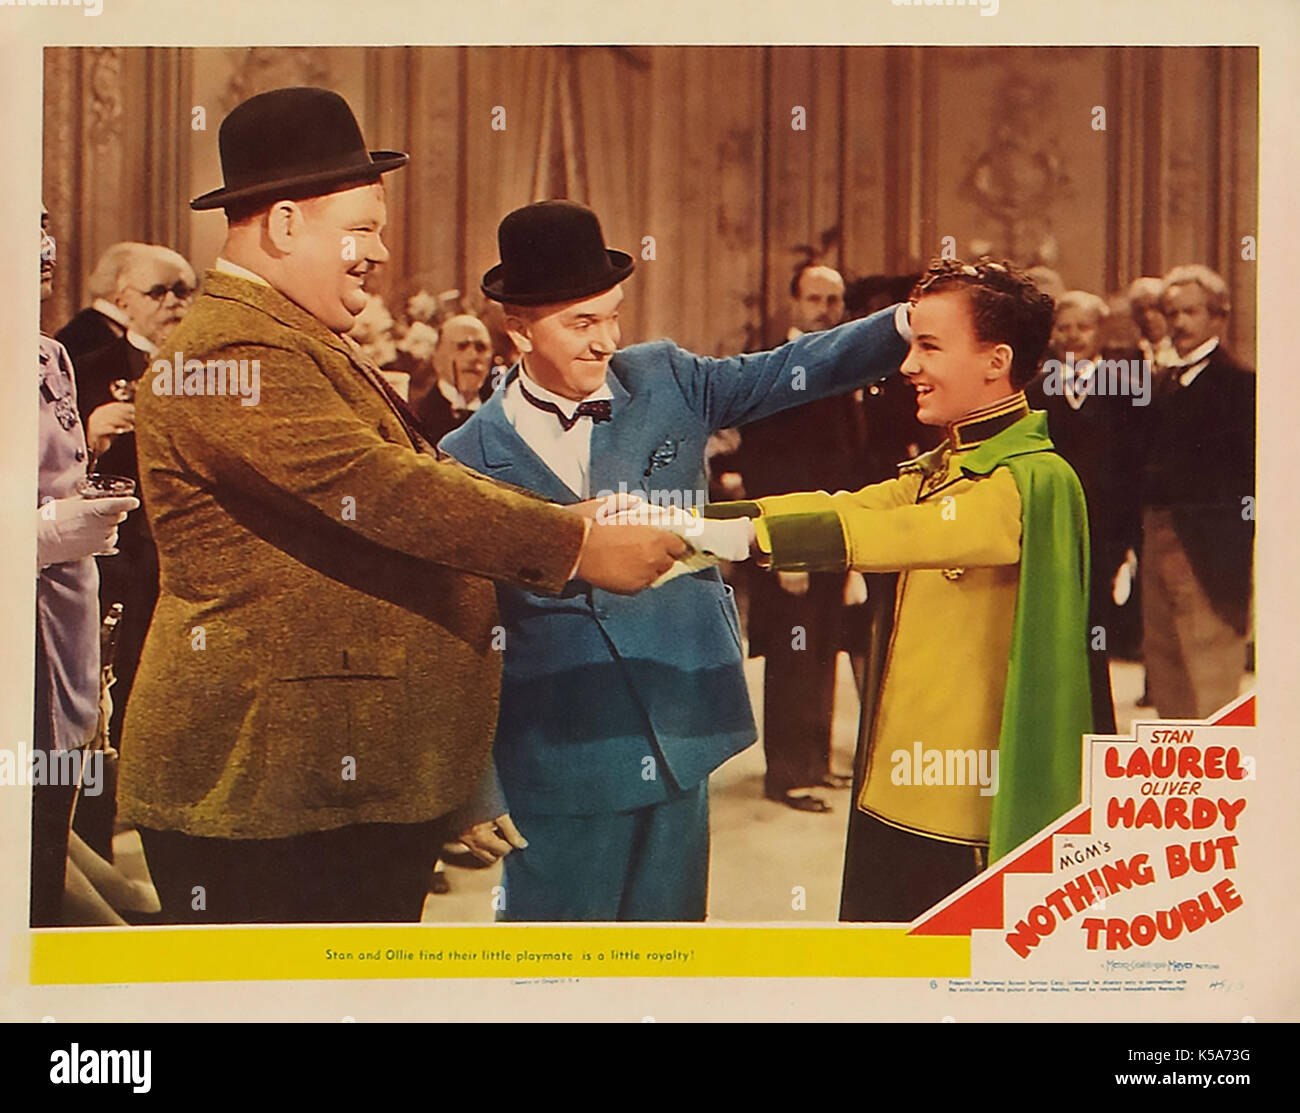 NOTHING BUT TROUBLE 1944 MGM film with Laurel and Hardy - Stock Image